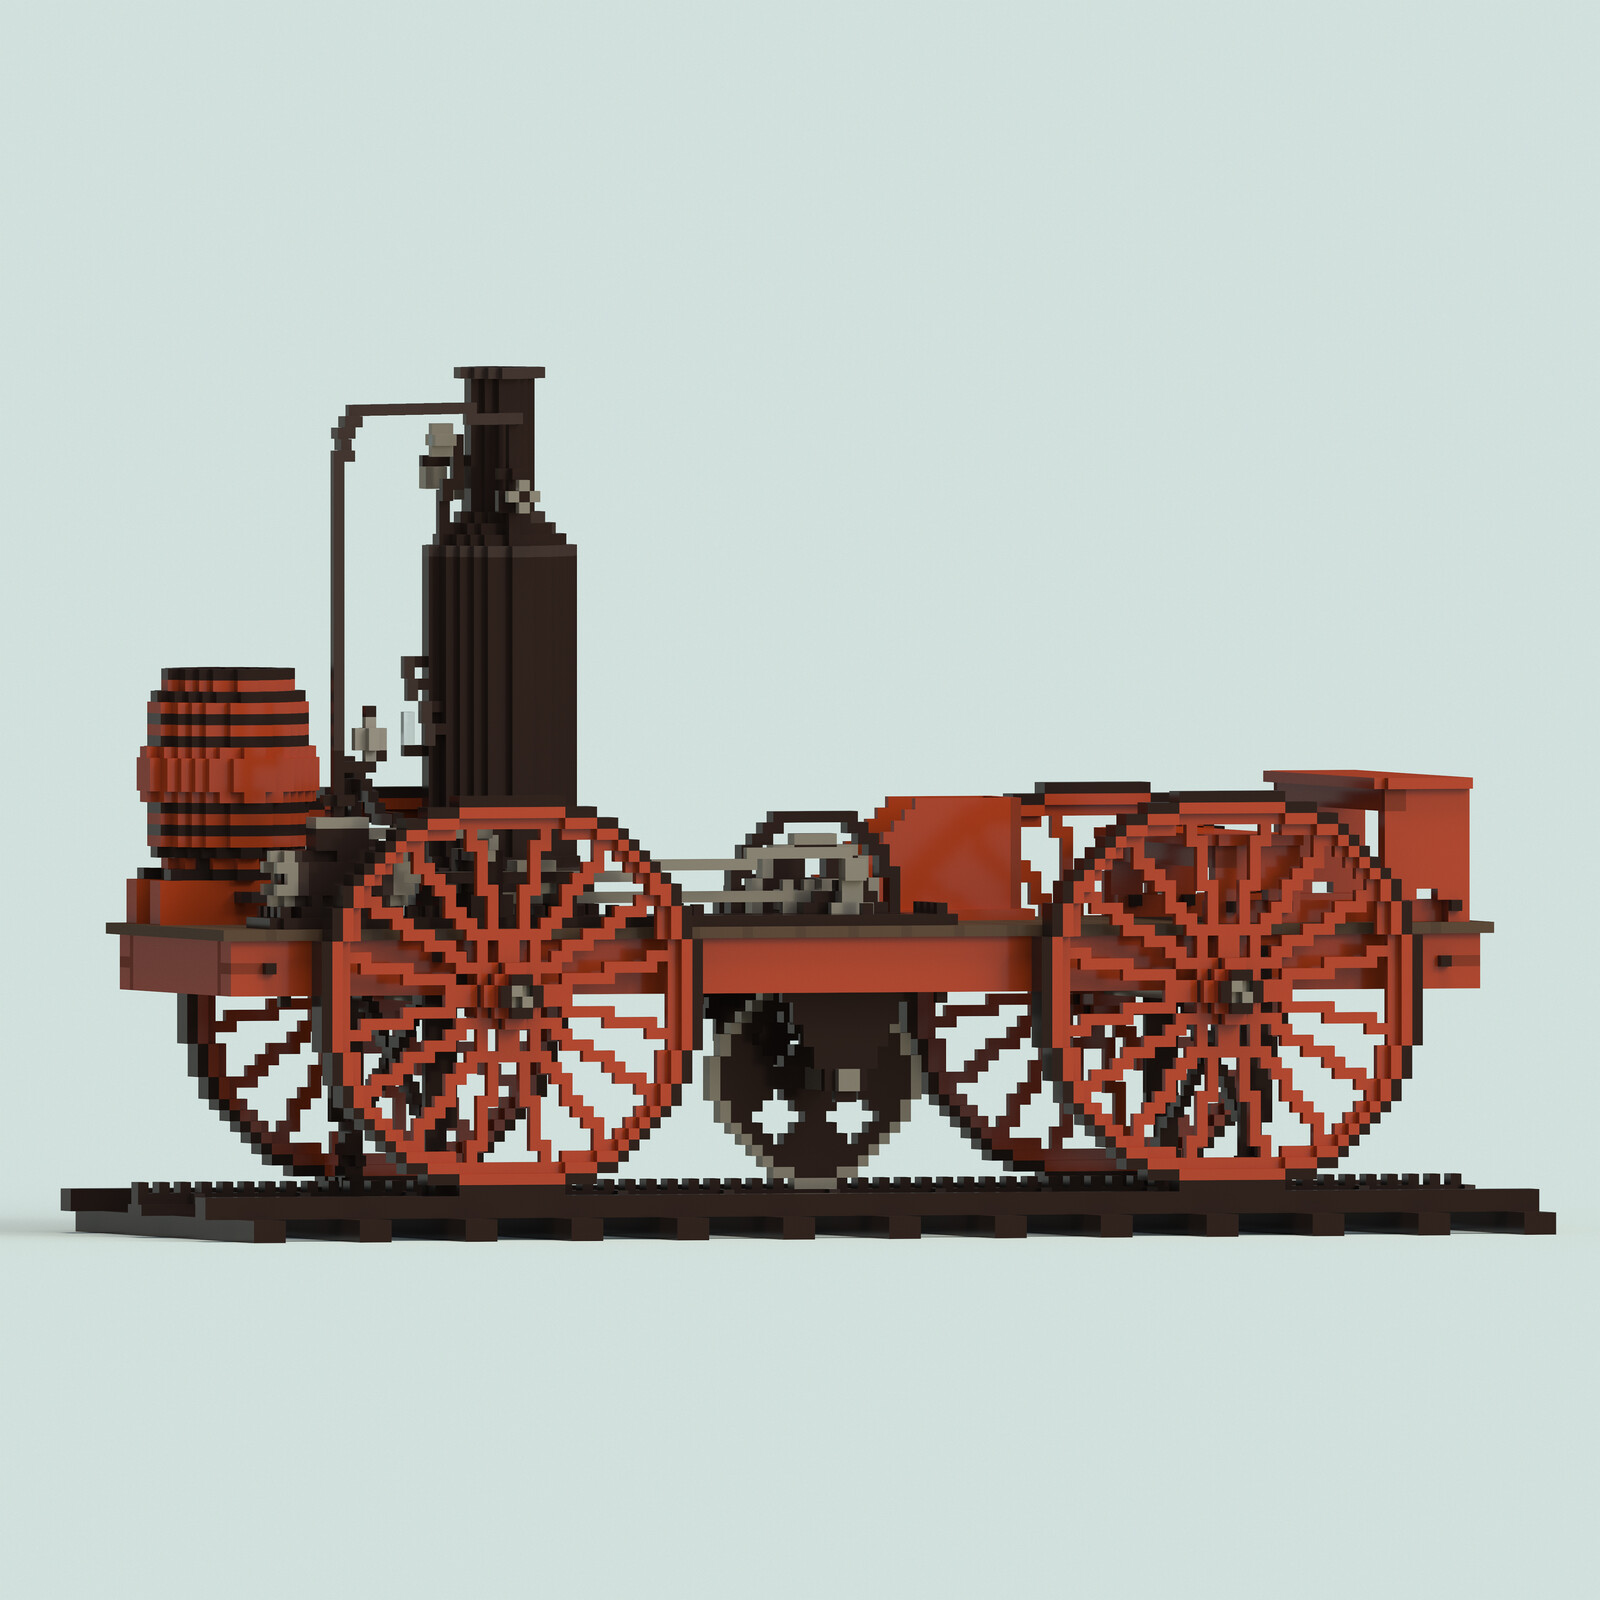 John Stevens Steam Locomotive (1825)